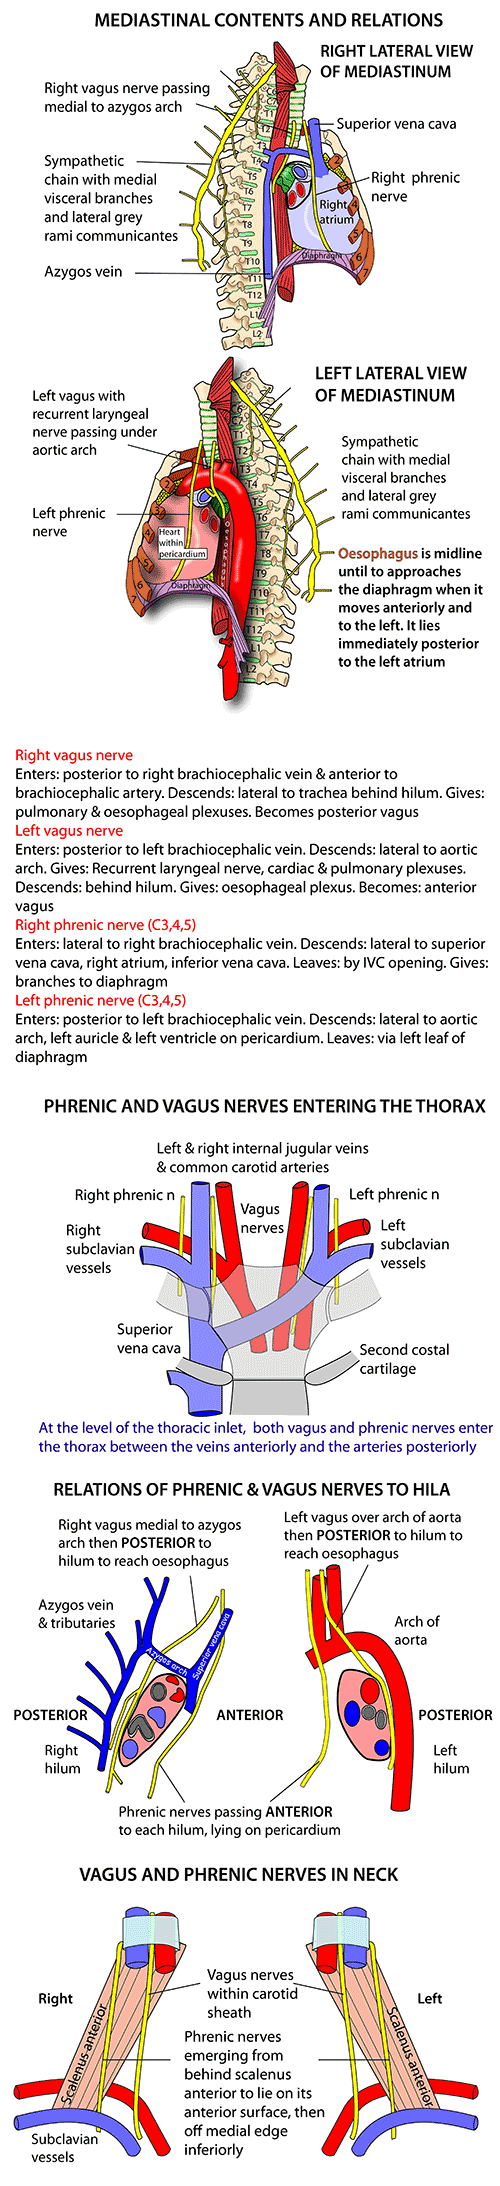 Instant Anatomy - Thorax - Nerves - Vagus